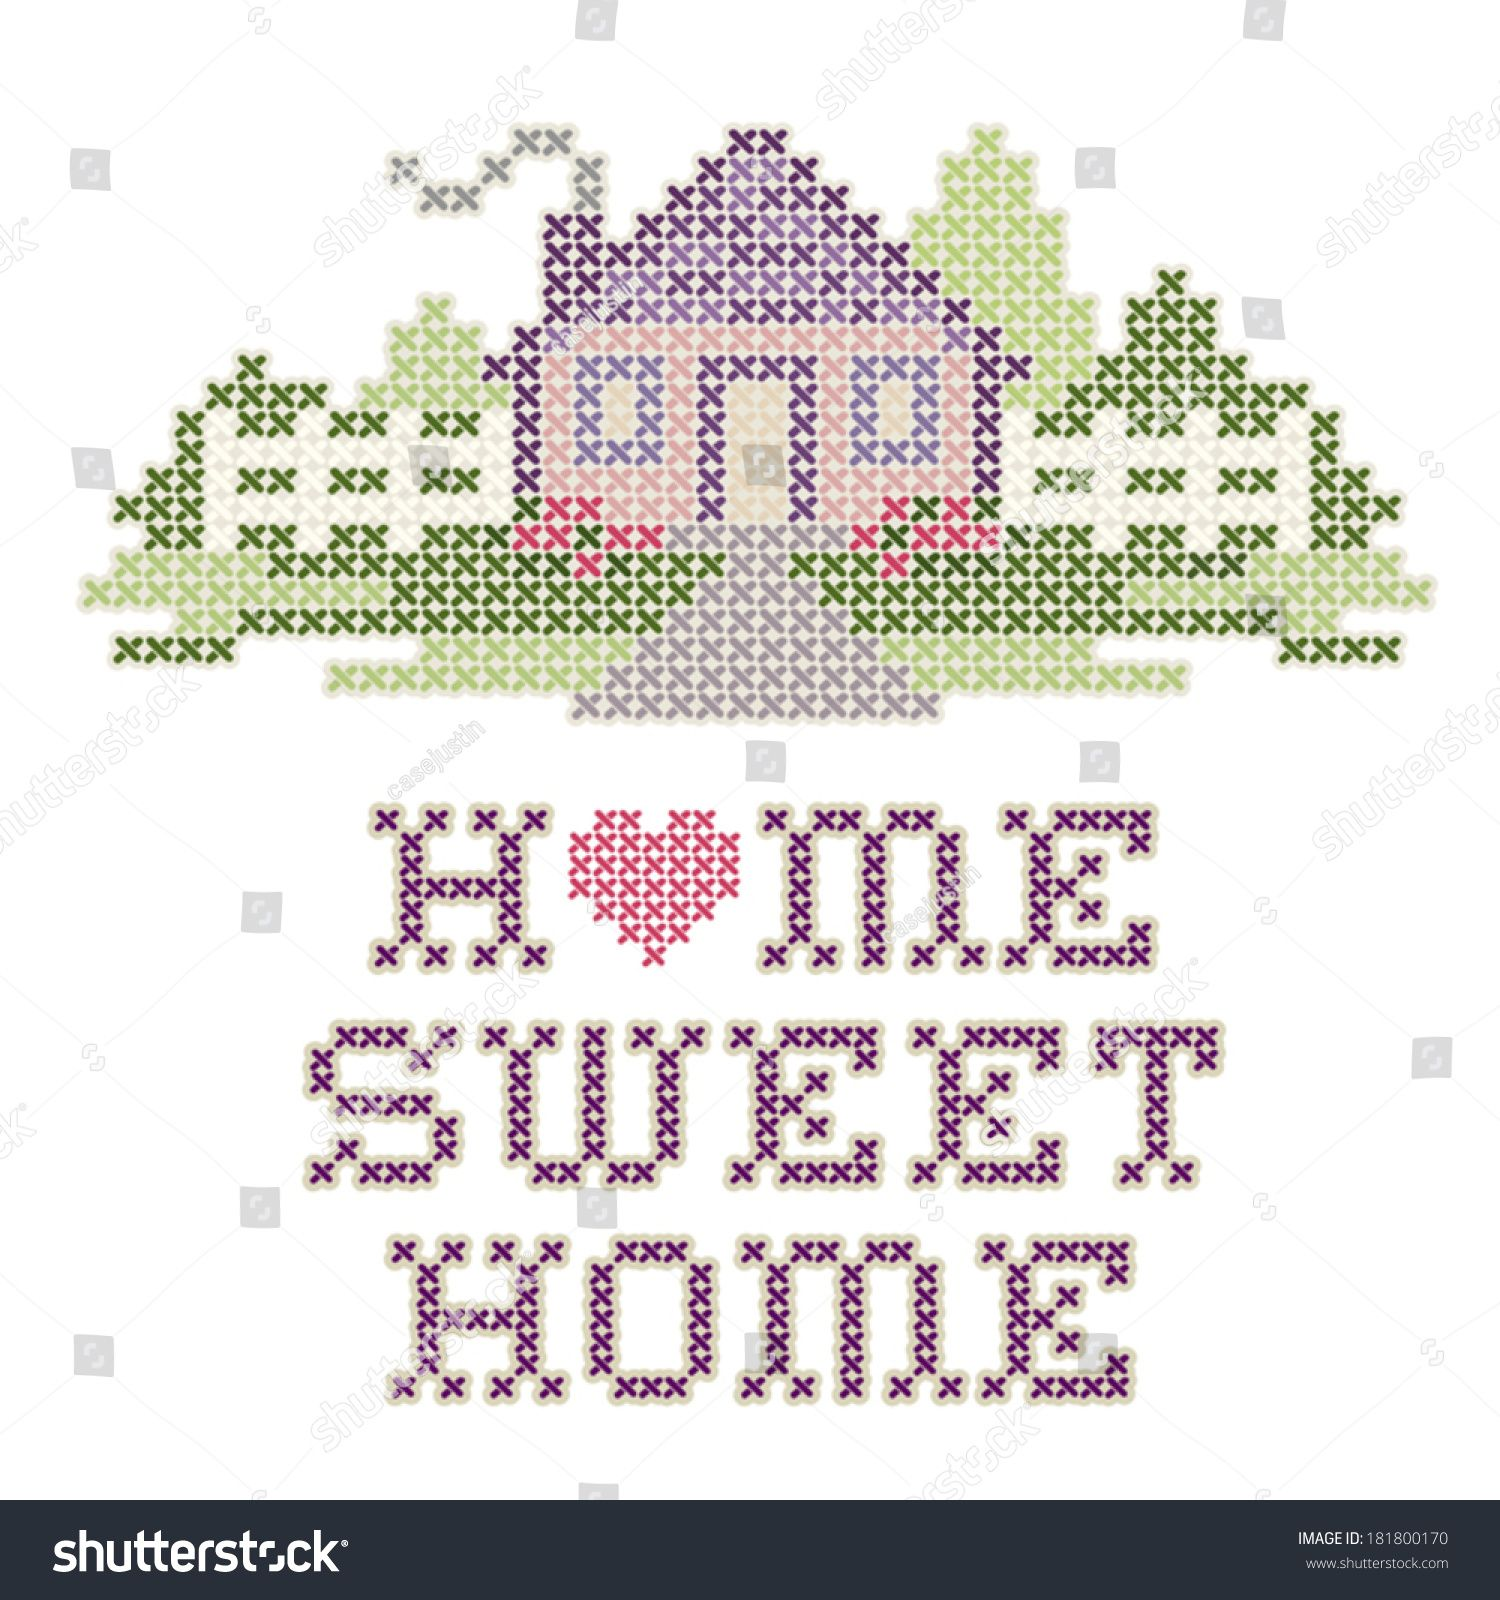 Home Sweet Home Embroidery, Cross Stitch design in pastel colors ...